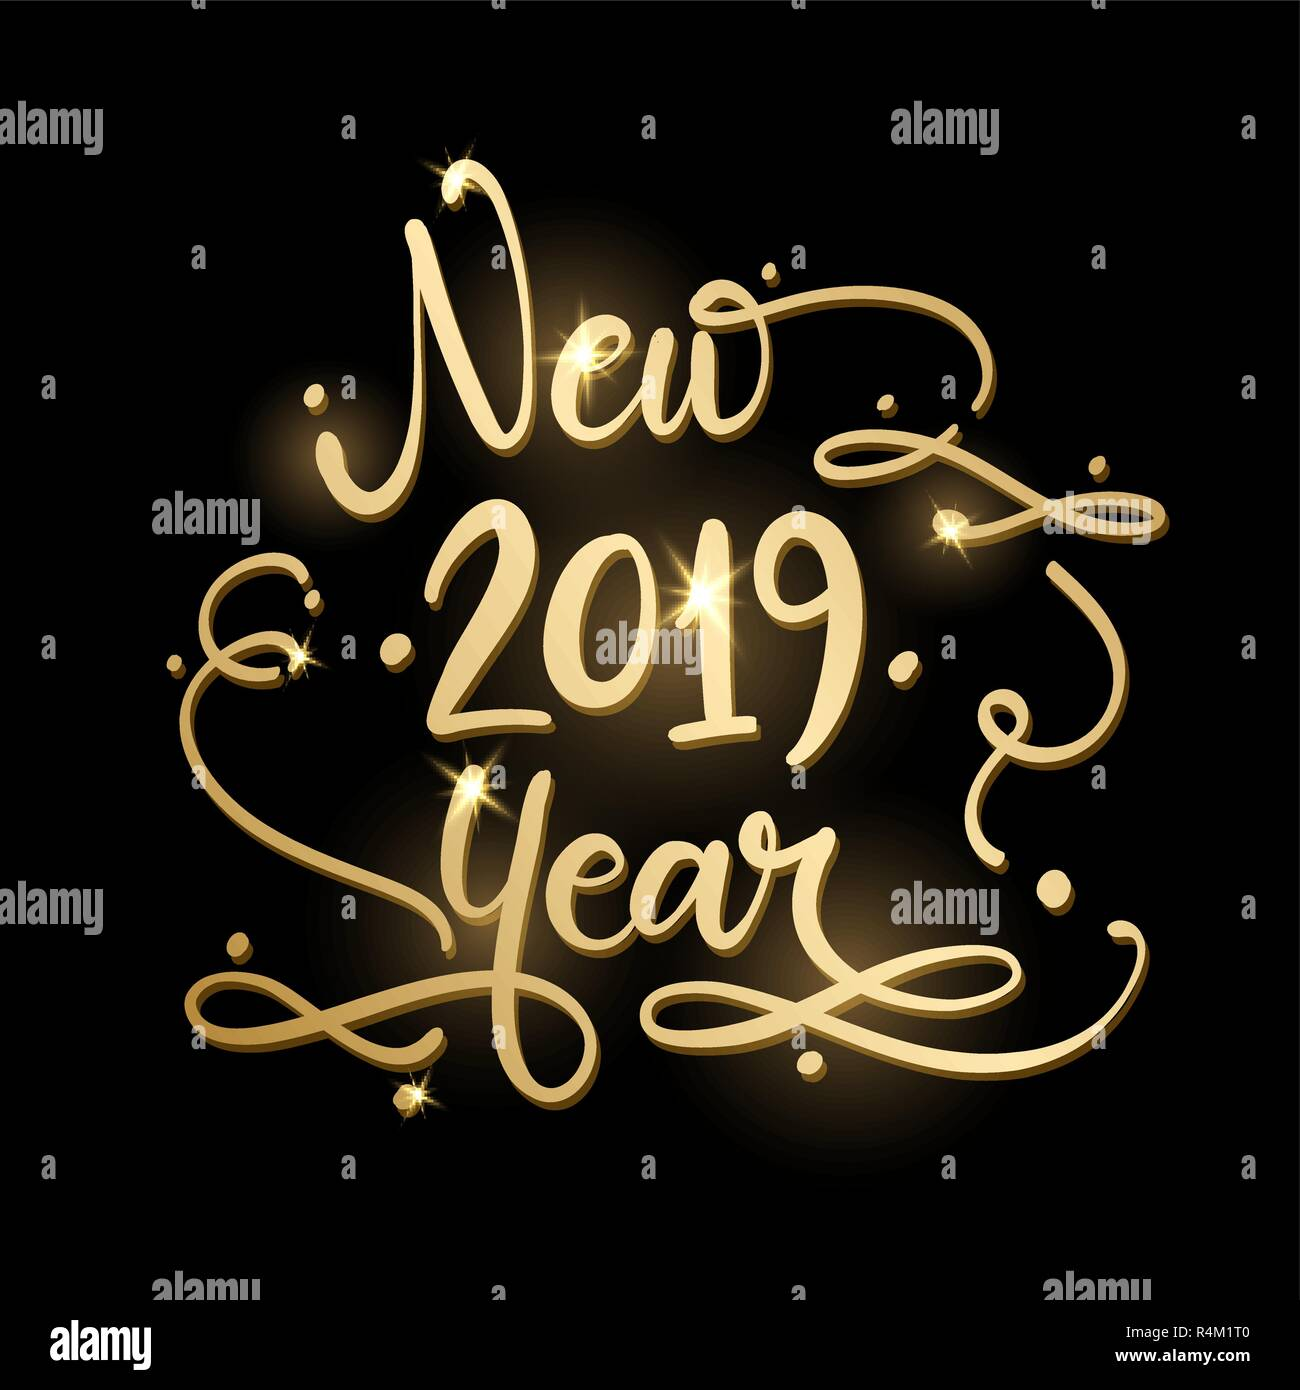 Golden sign Happy New 2019 Year Holiday Vector Illustration. Shiny Gold Lettering Composition With Sparkles - Stock Image